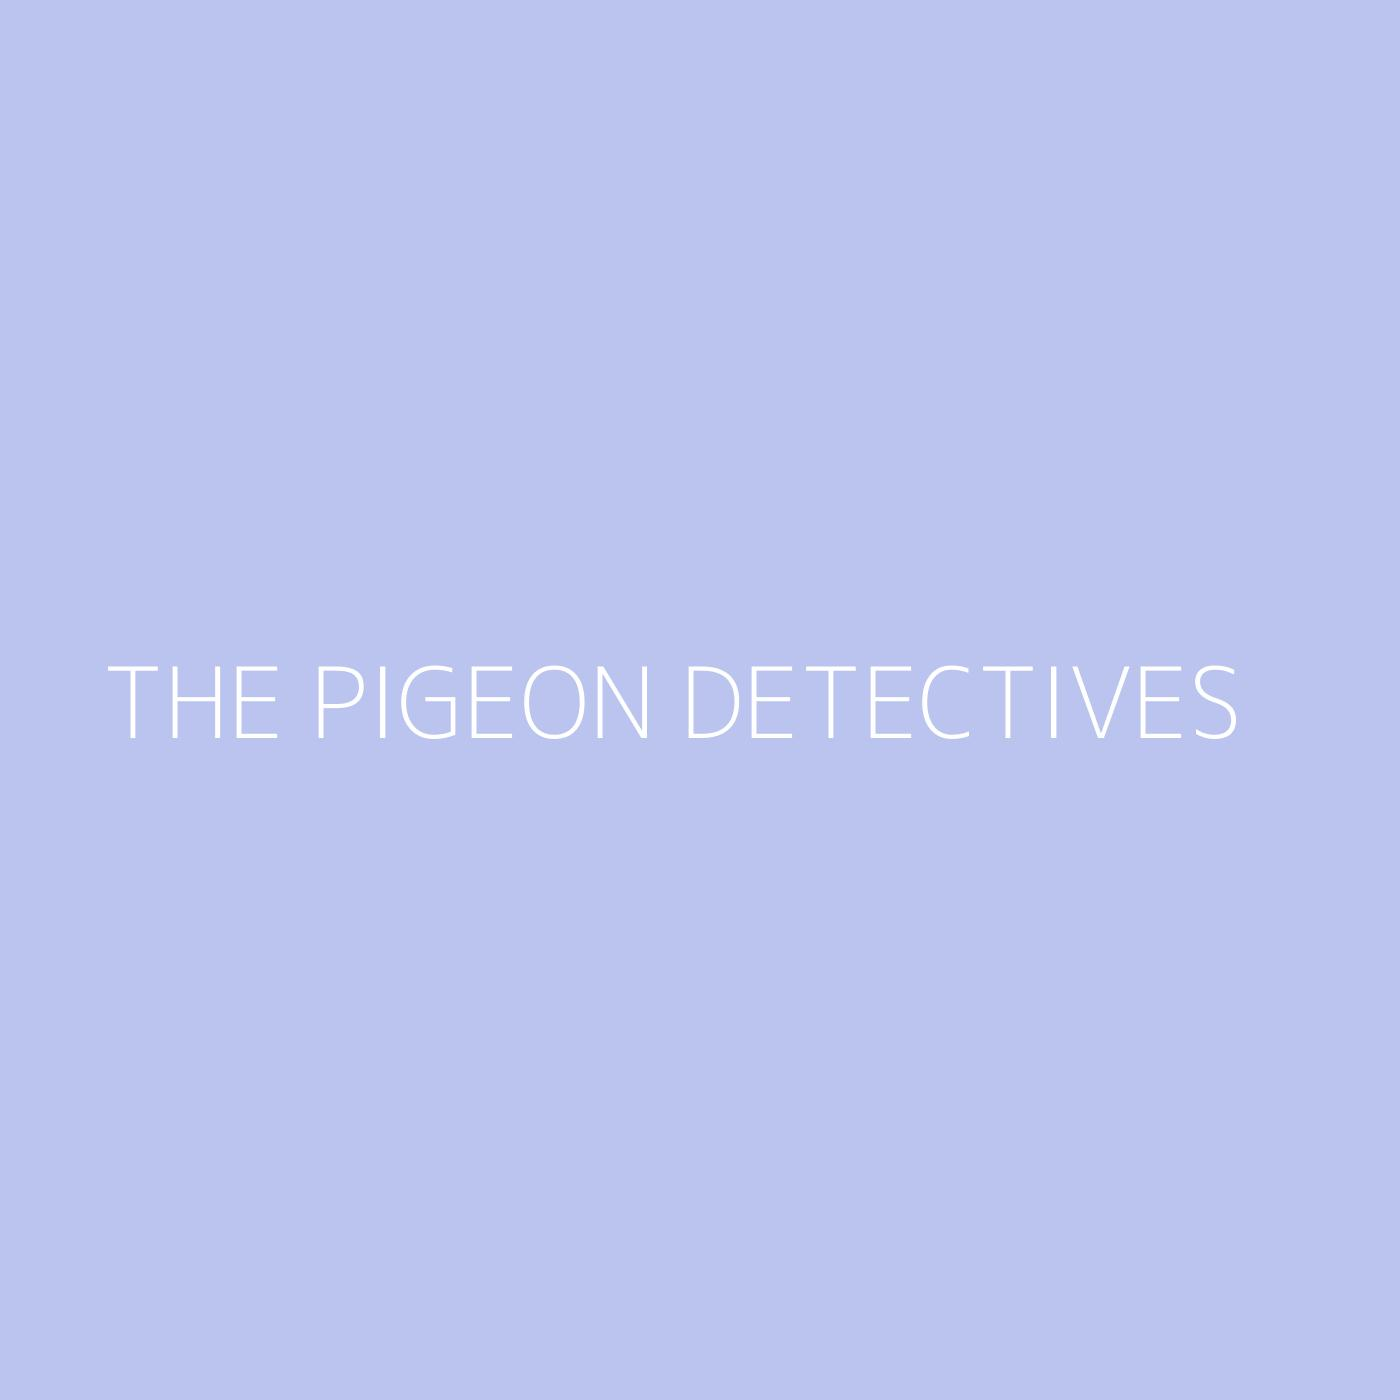 The Pigeon Detectives Playlist Artwork